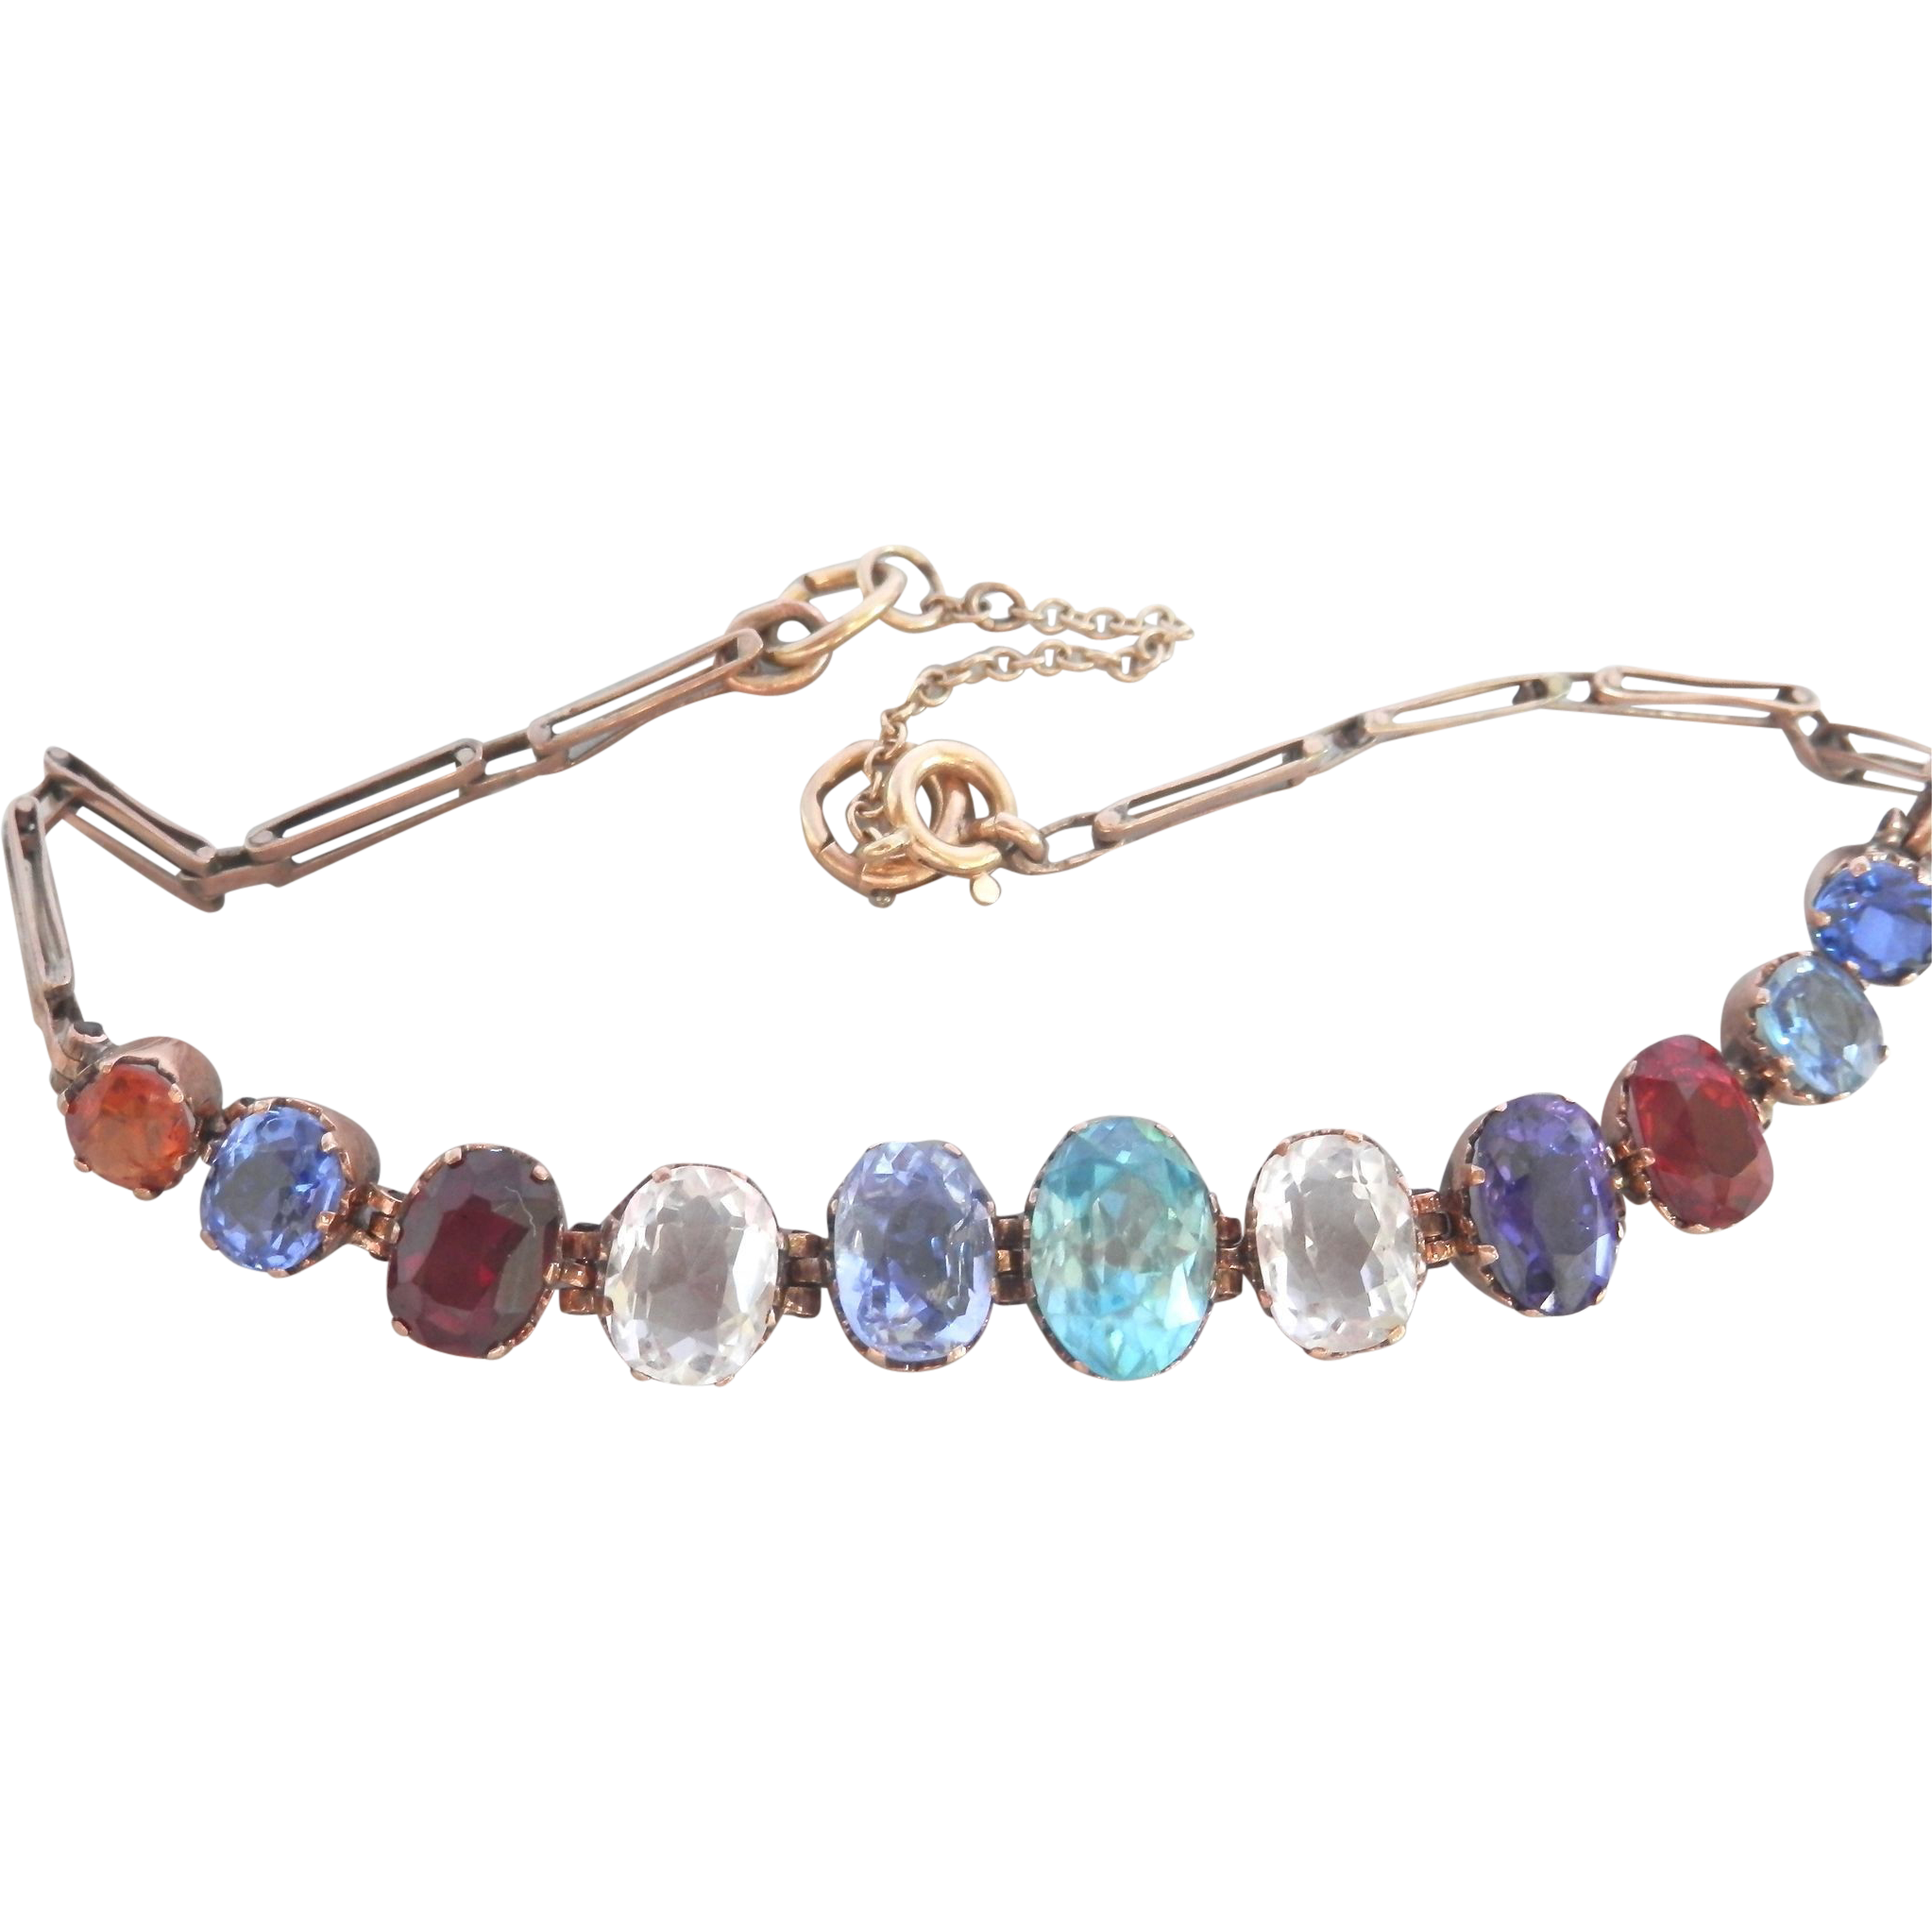 collections arrivals new gem quartz lena products skadegard rose dusty bracelet